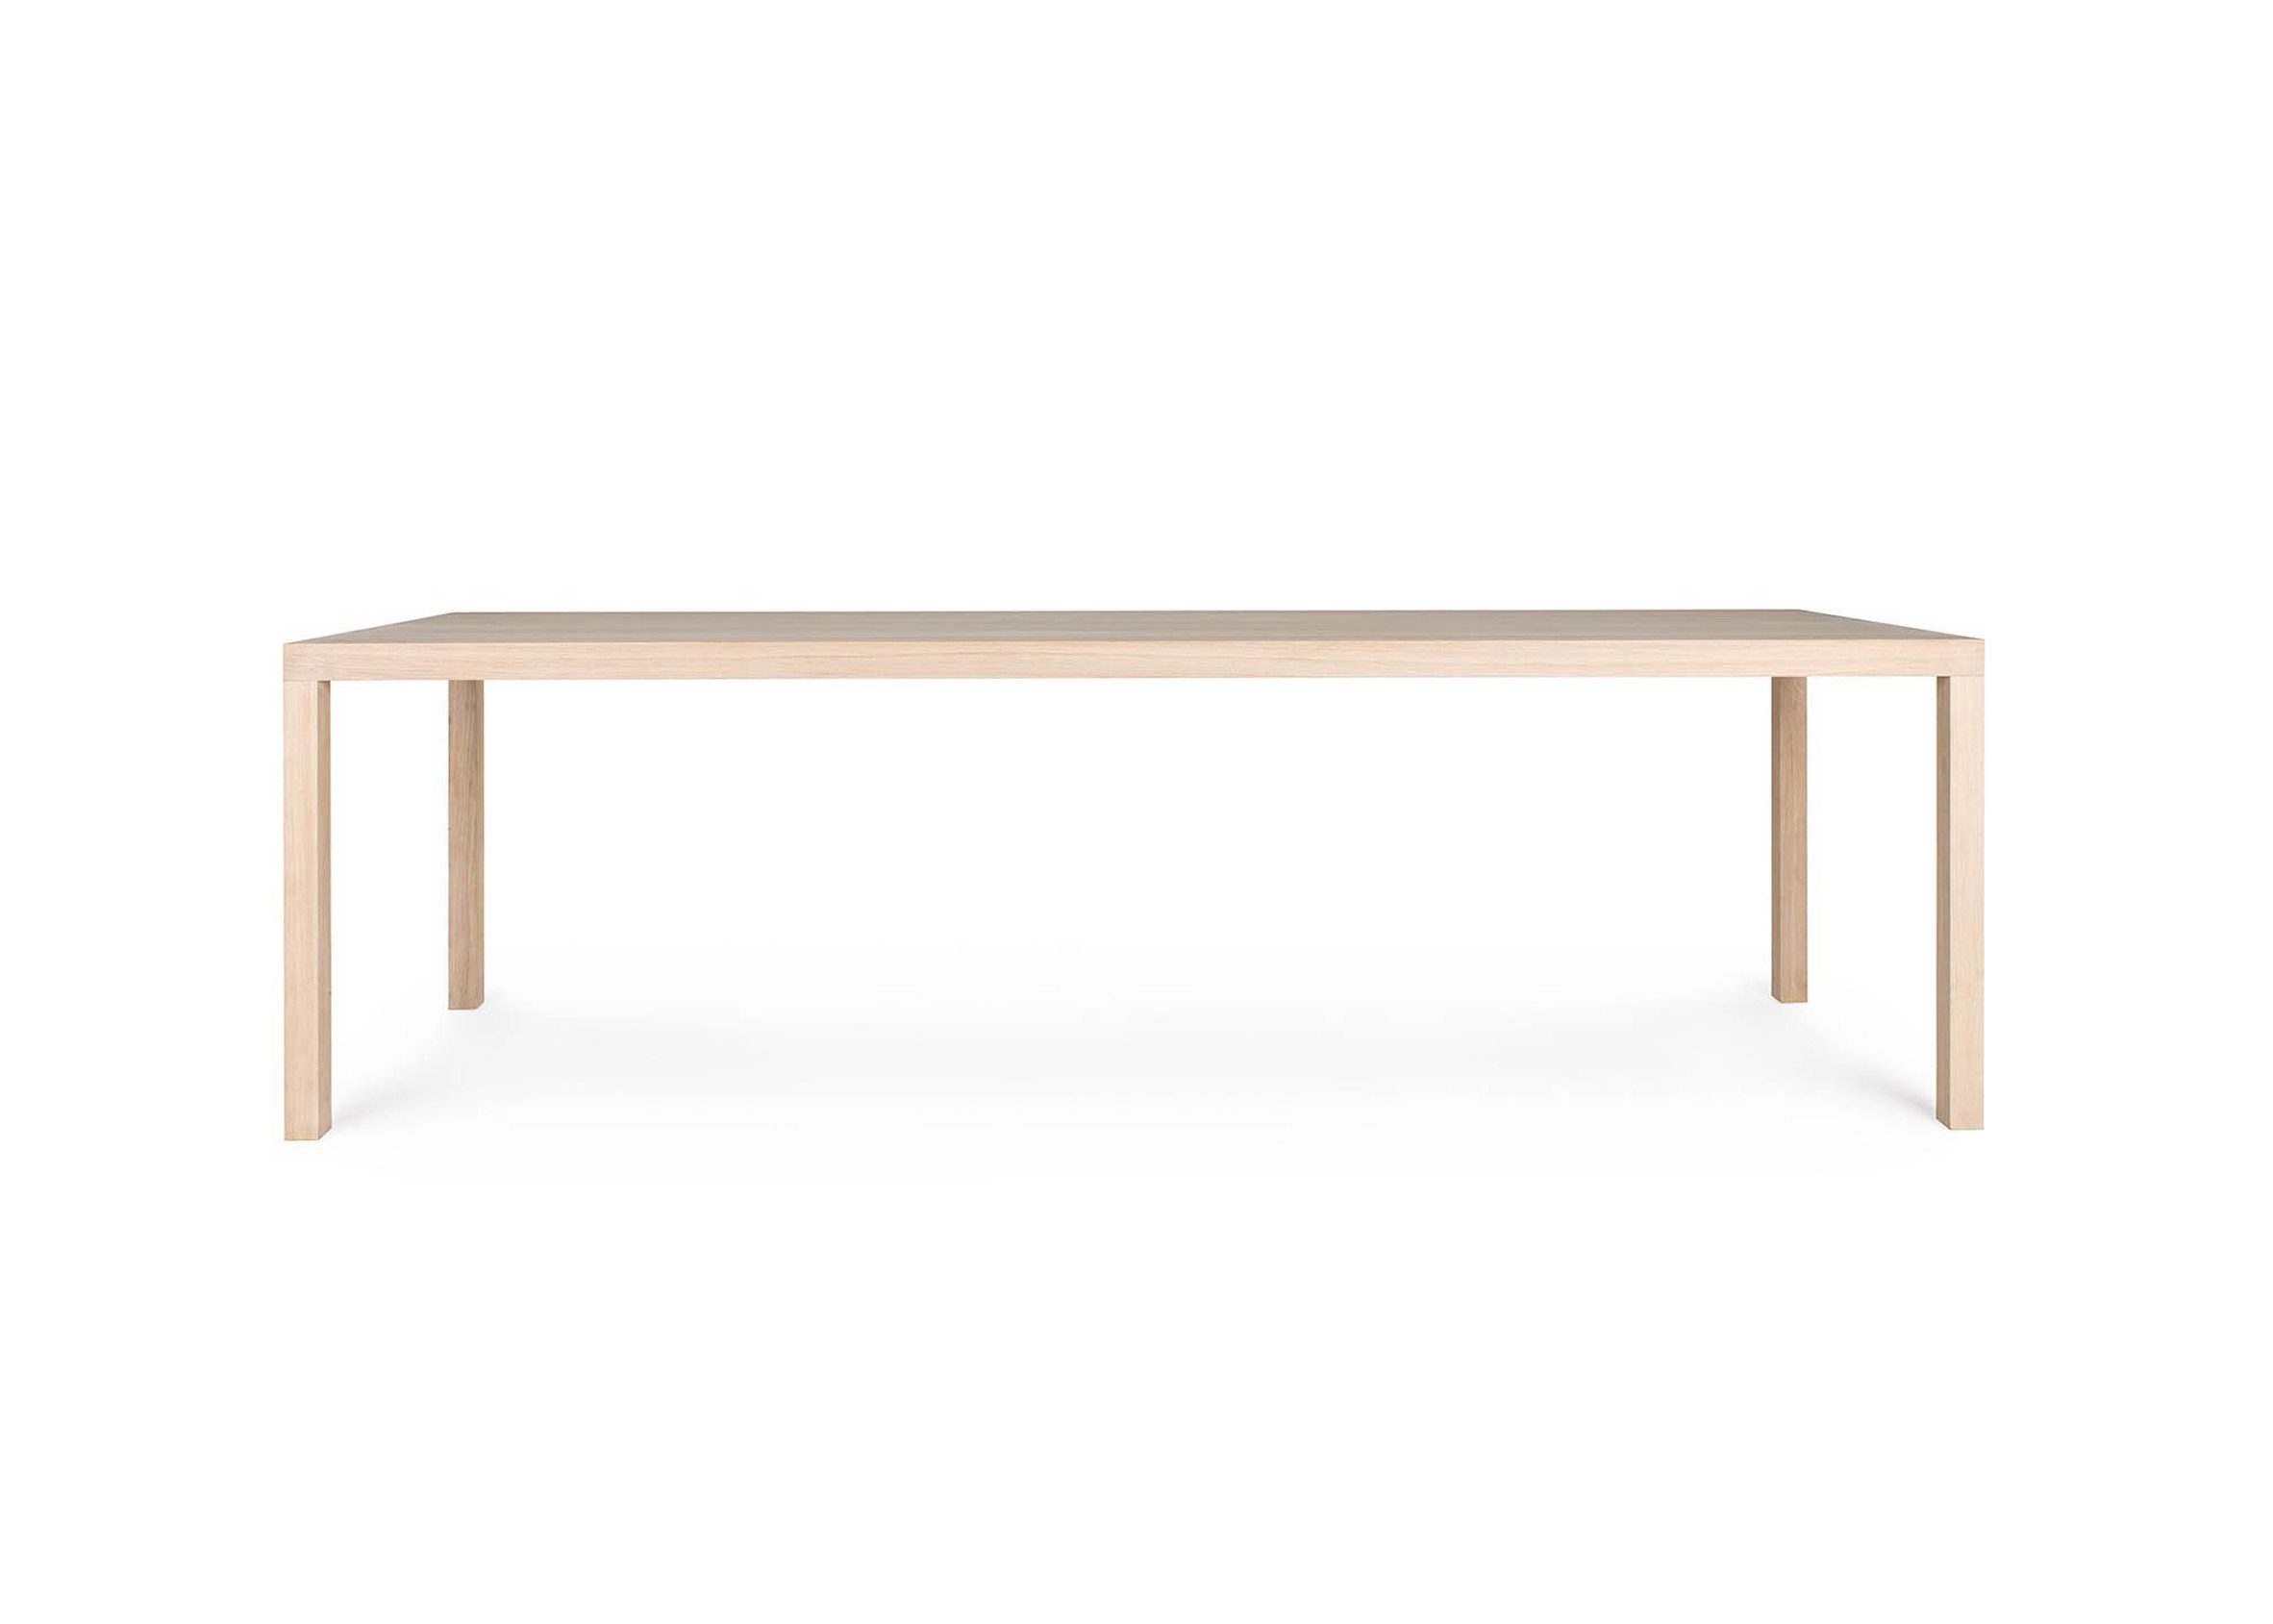 T88W Table by Maarten Van Severen is one of James Mair's top five minimalist furniture choices